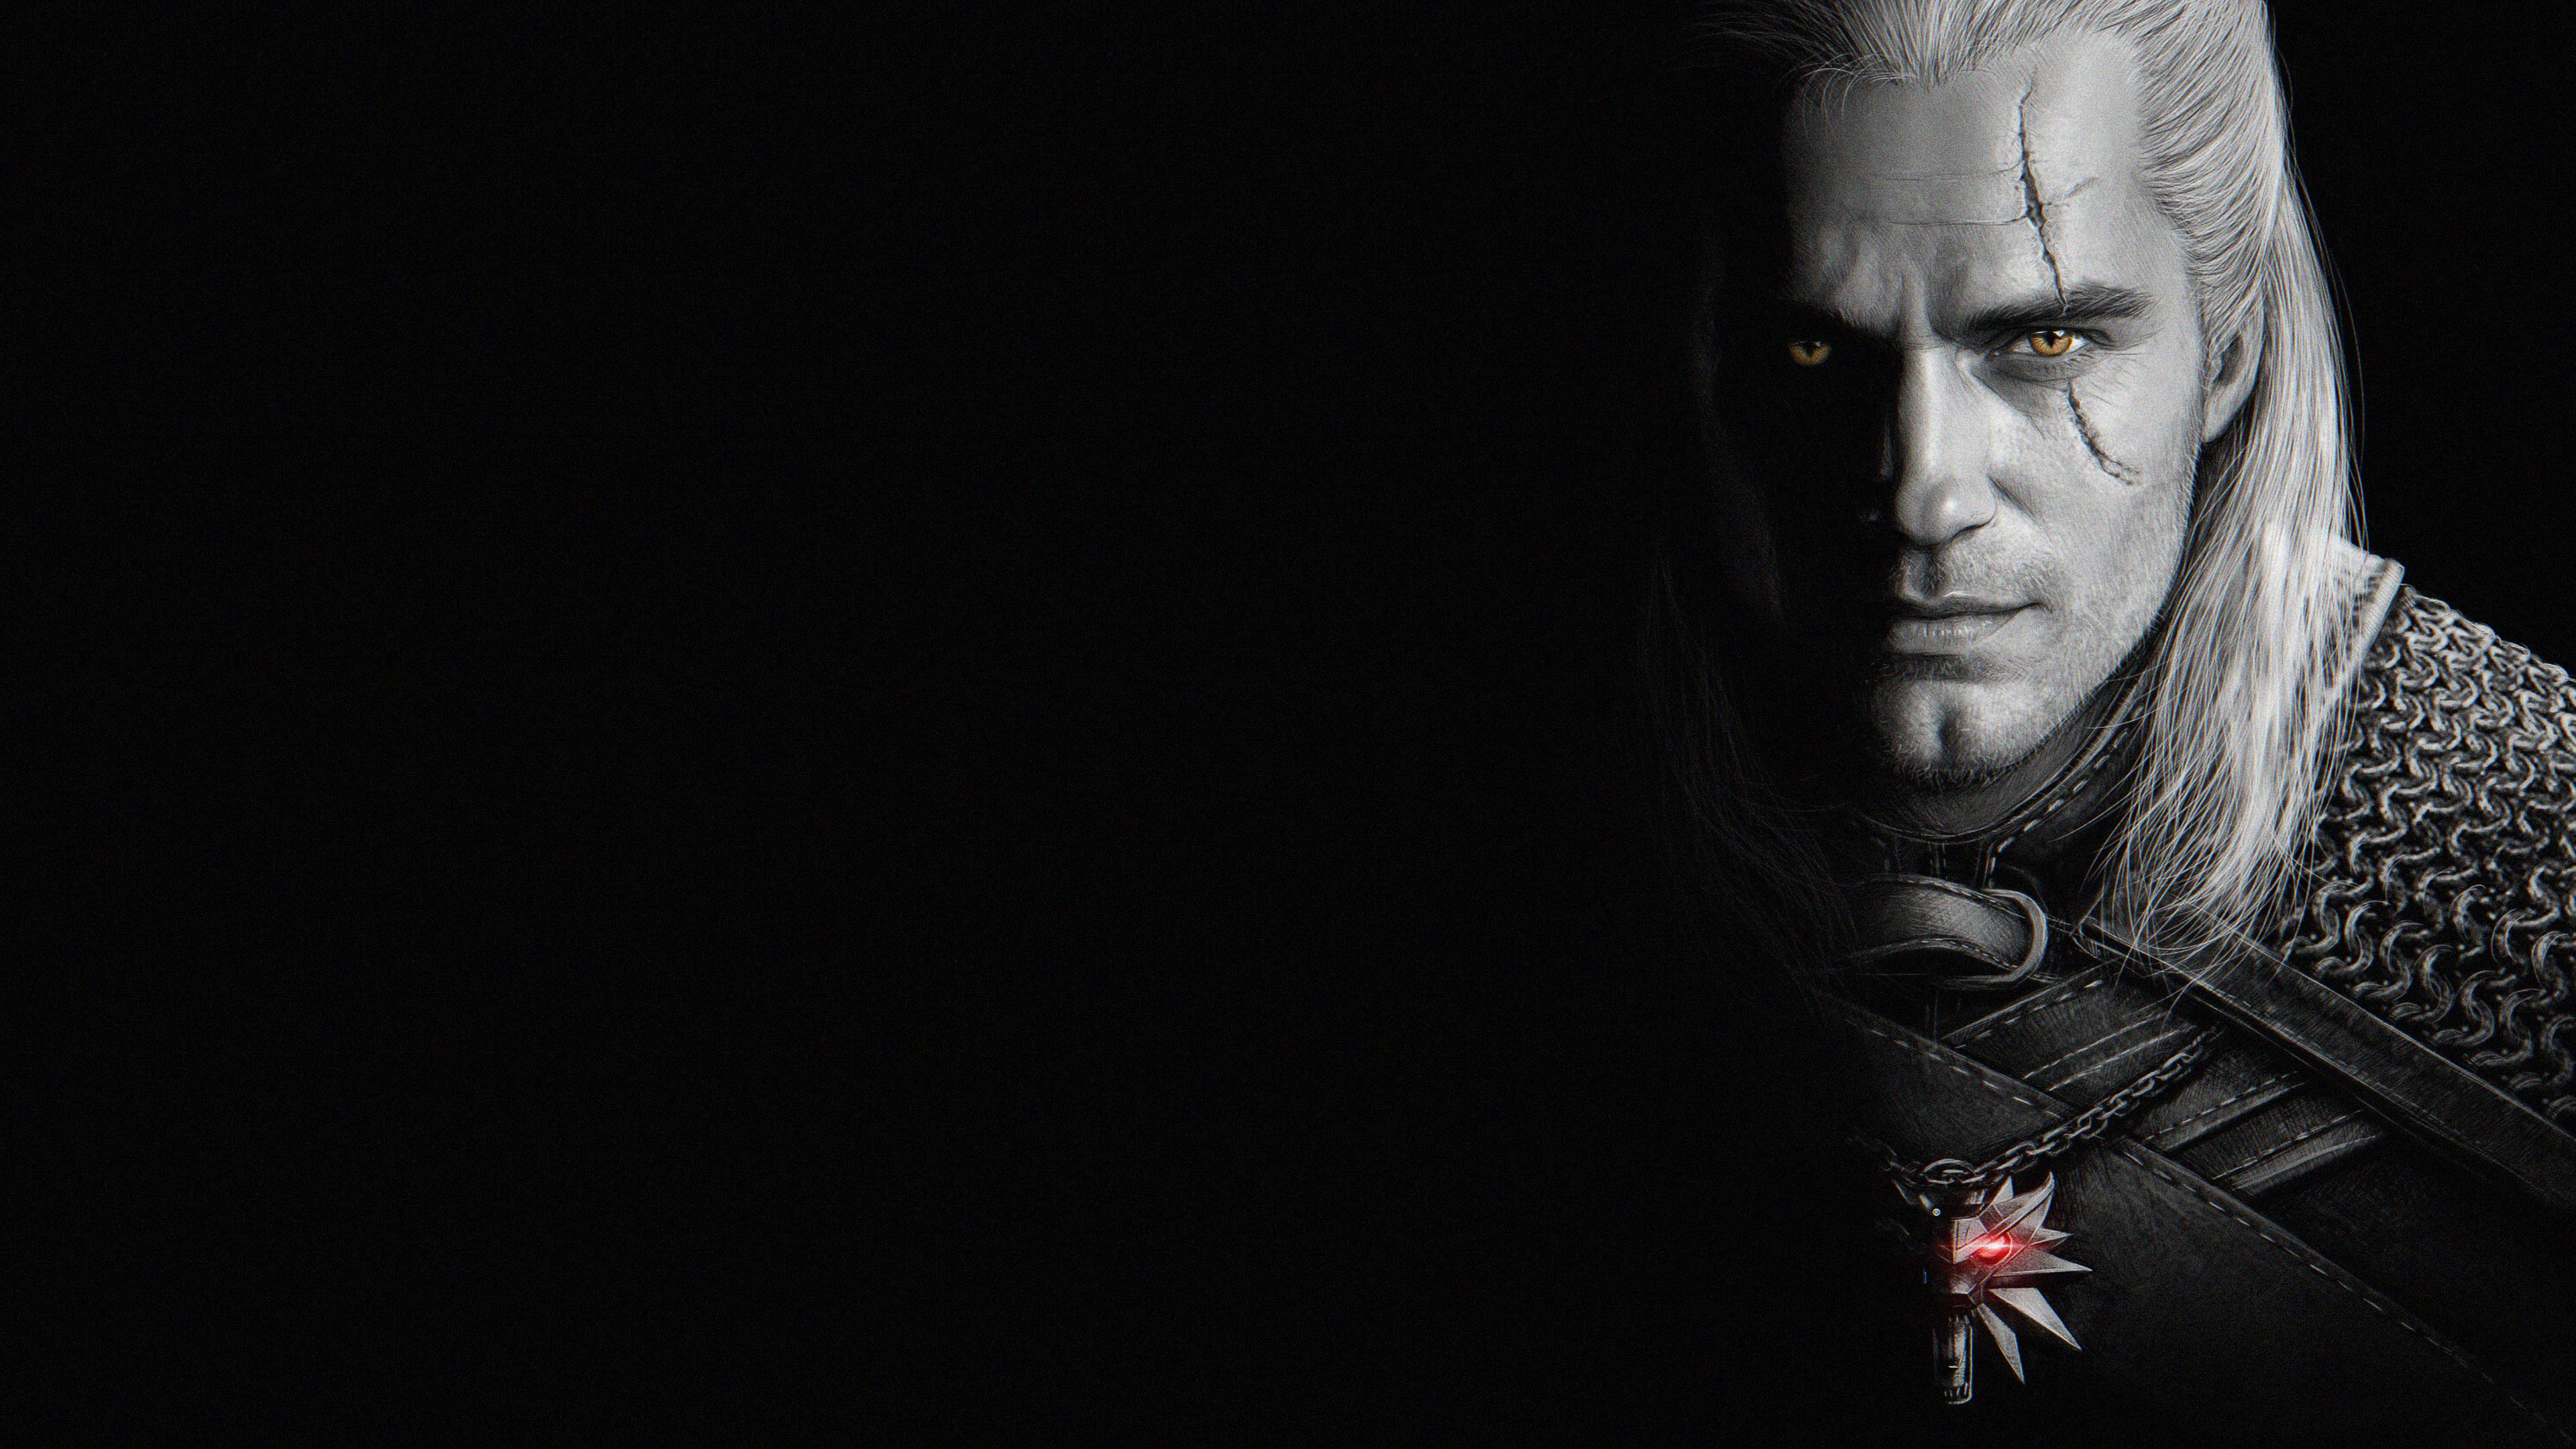 The Witcher 3 Iphone Wallpaper The Witcher Game The Witcher Wild Hunt The Witcher 3